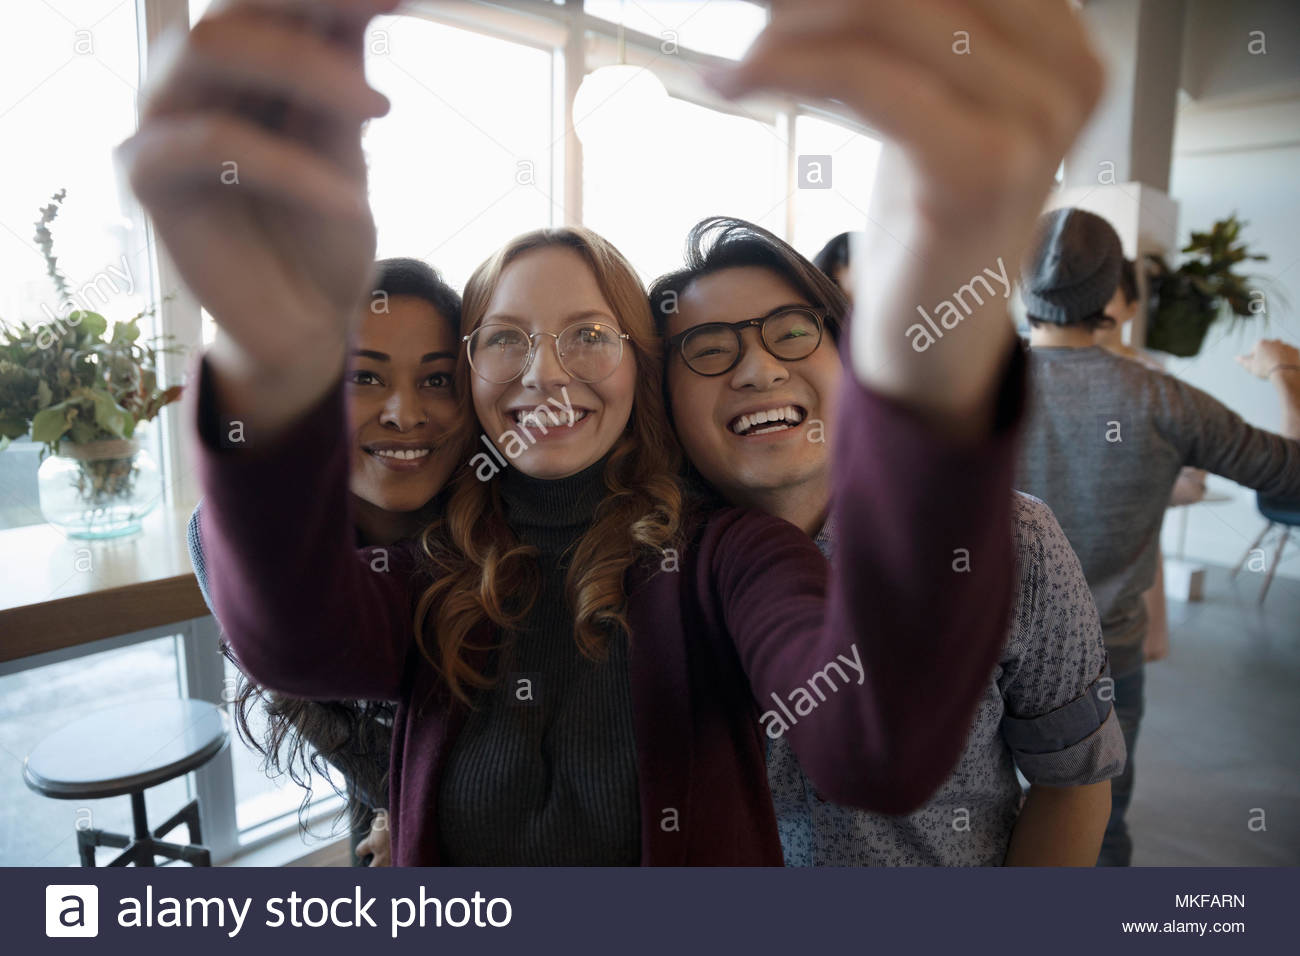 Smiling, enthusiastic young friends taking selfie with camera phone - Stock Image